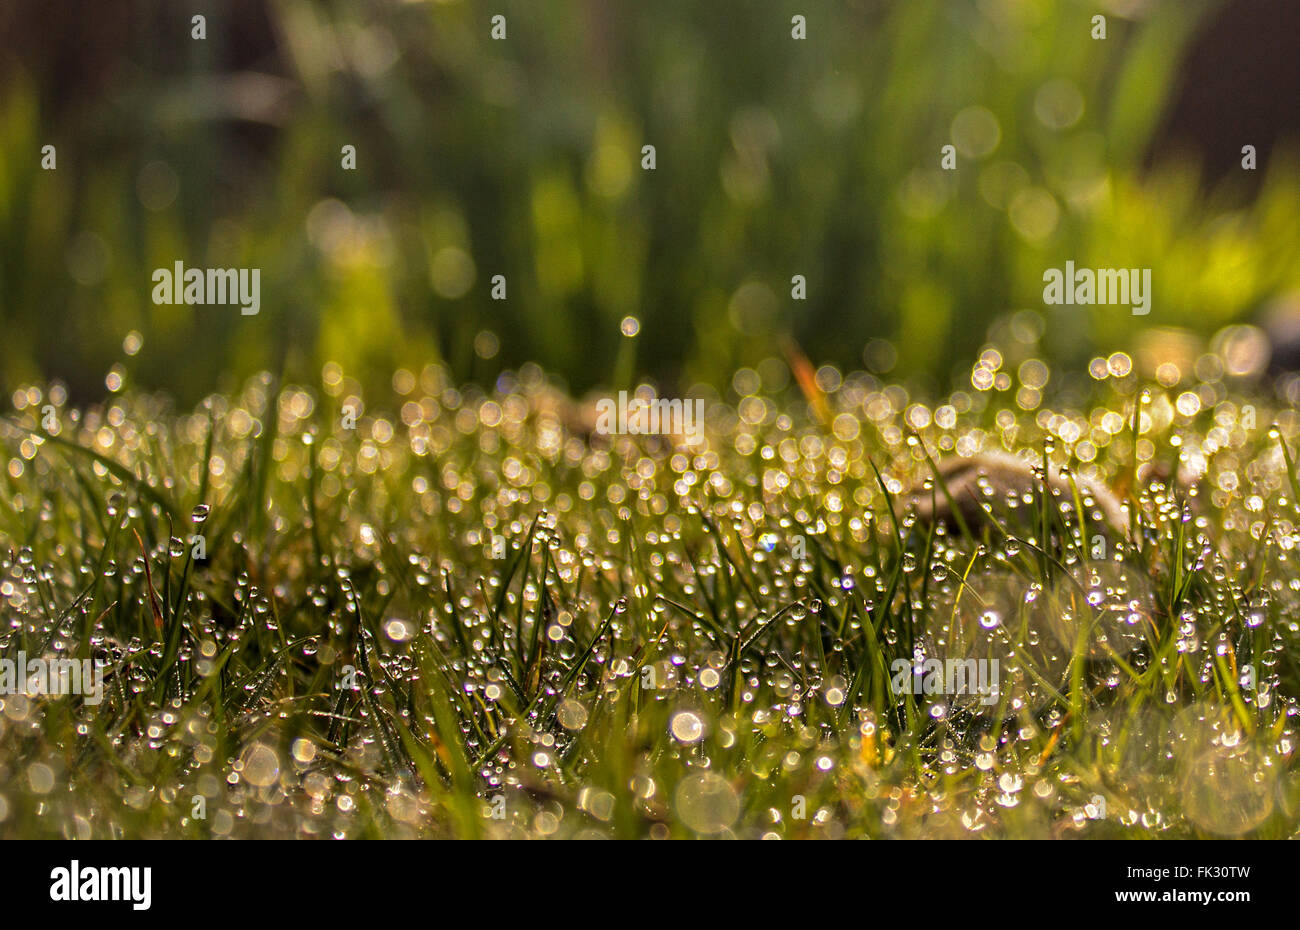 dewdrops on grass - Stock Image